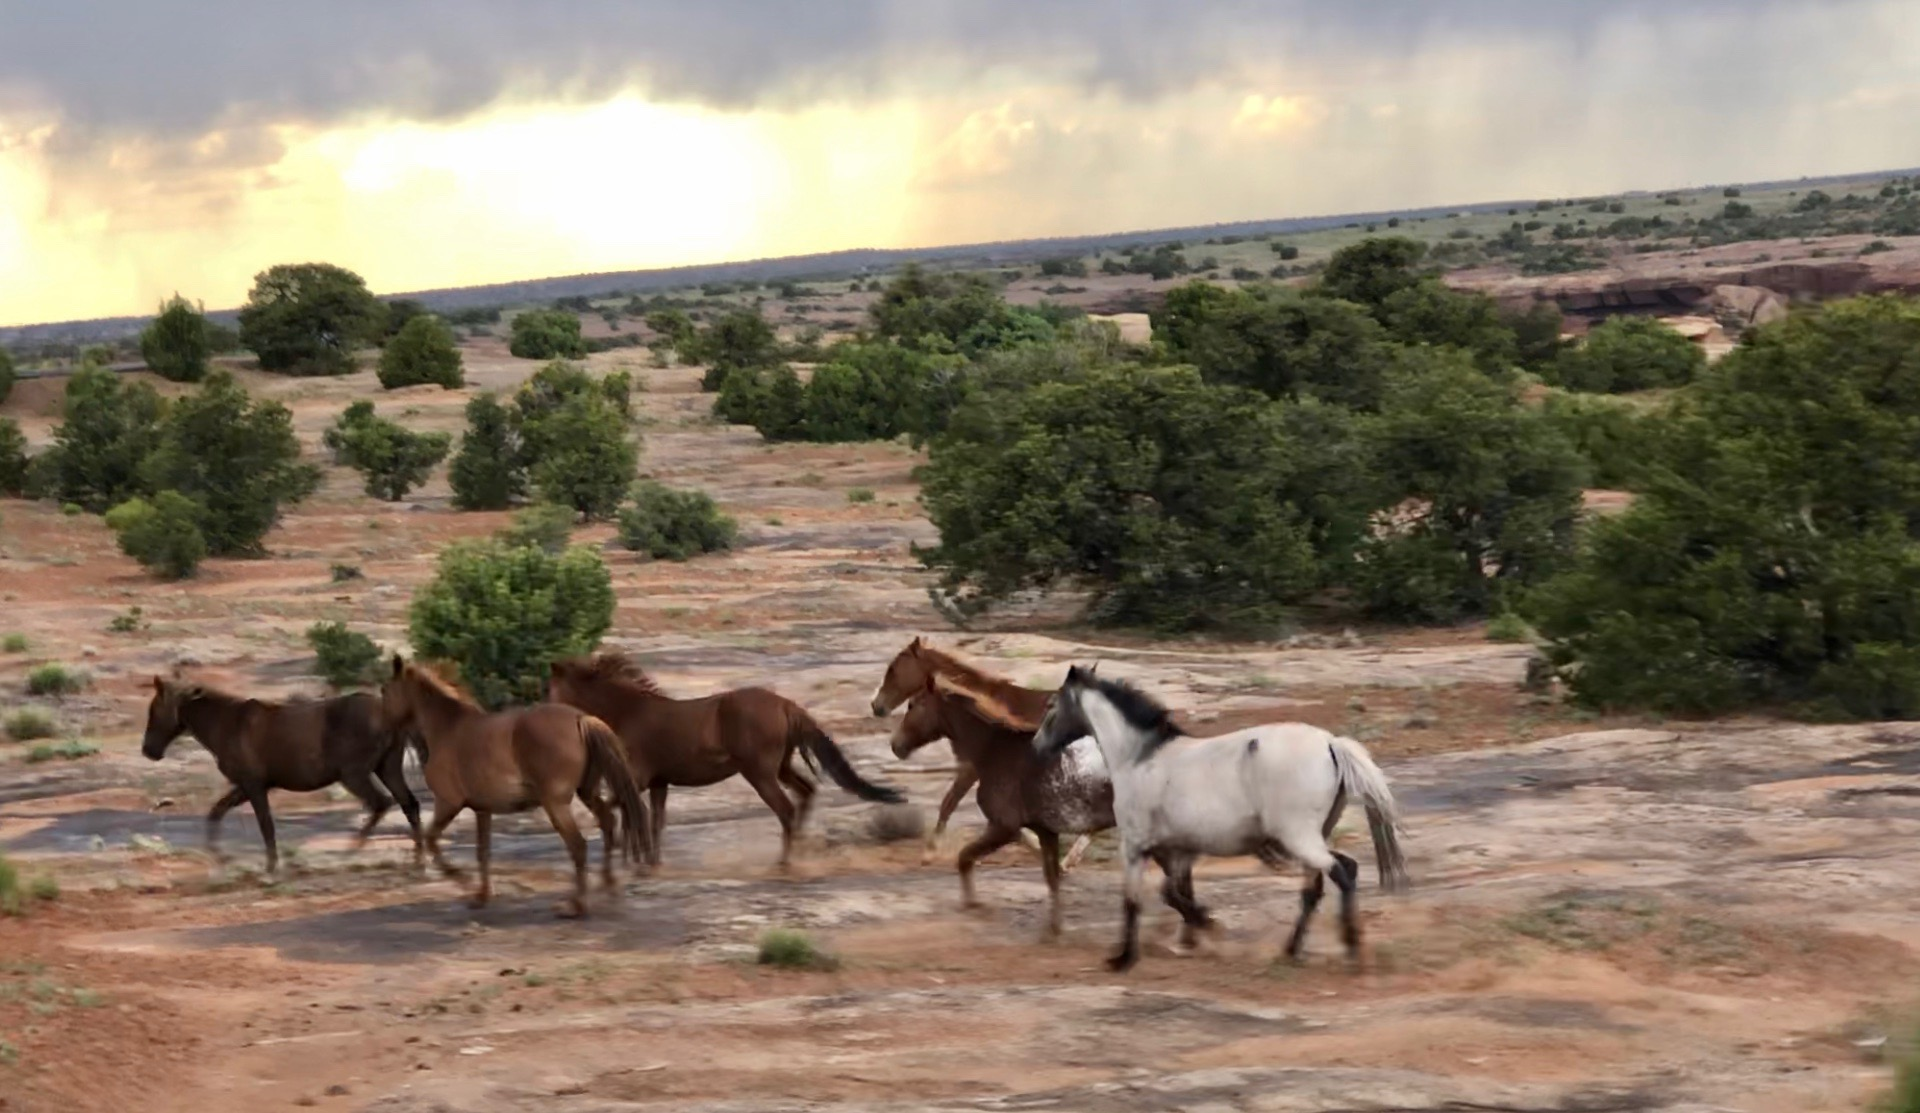 Wild horses (breathtaking!)